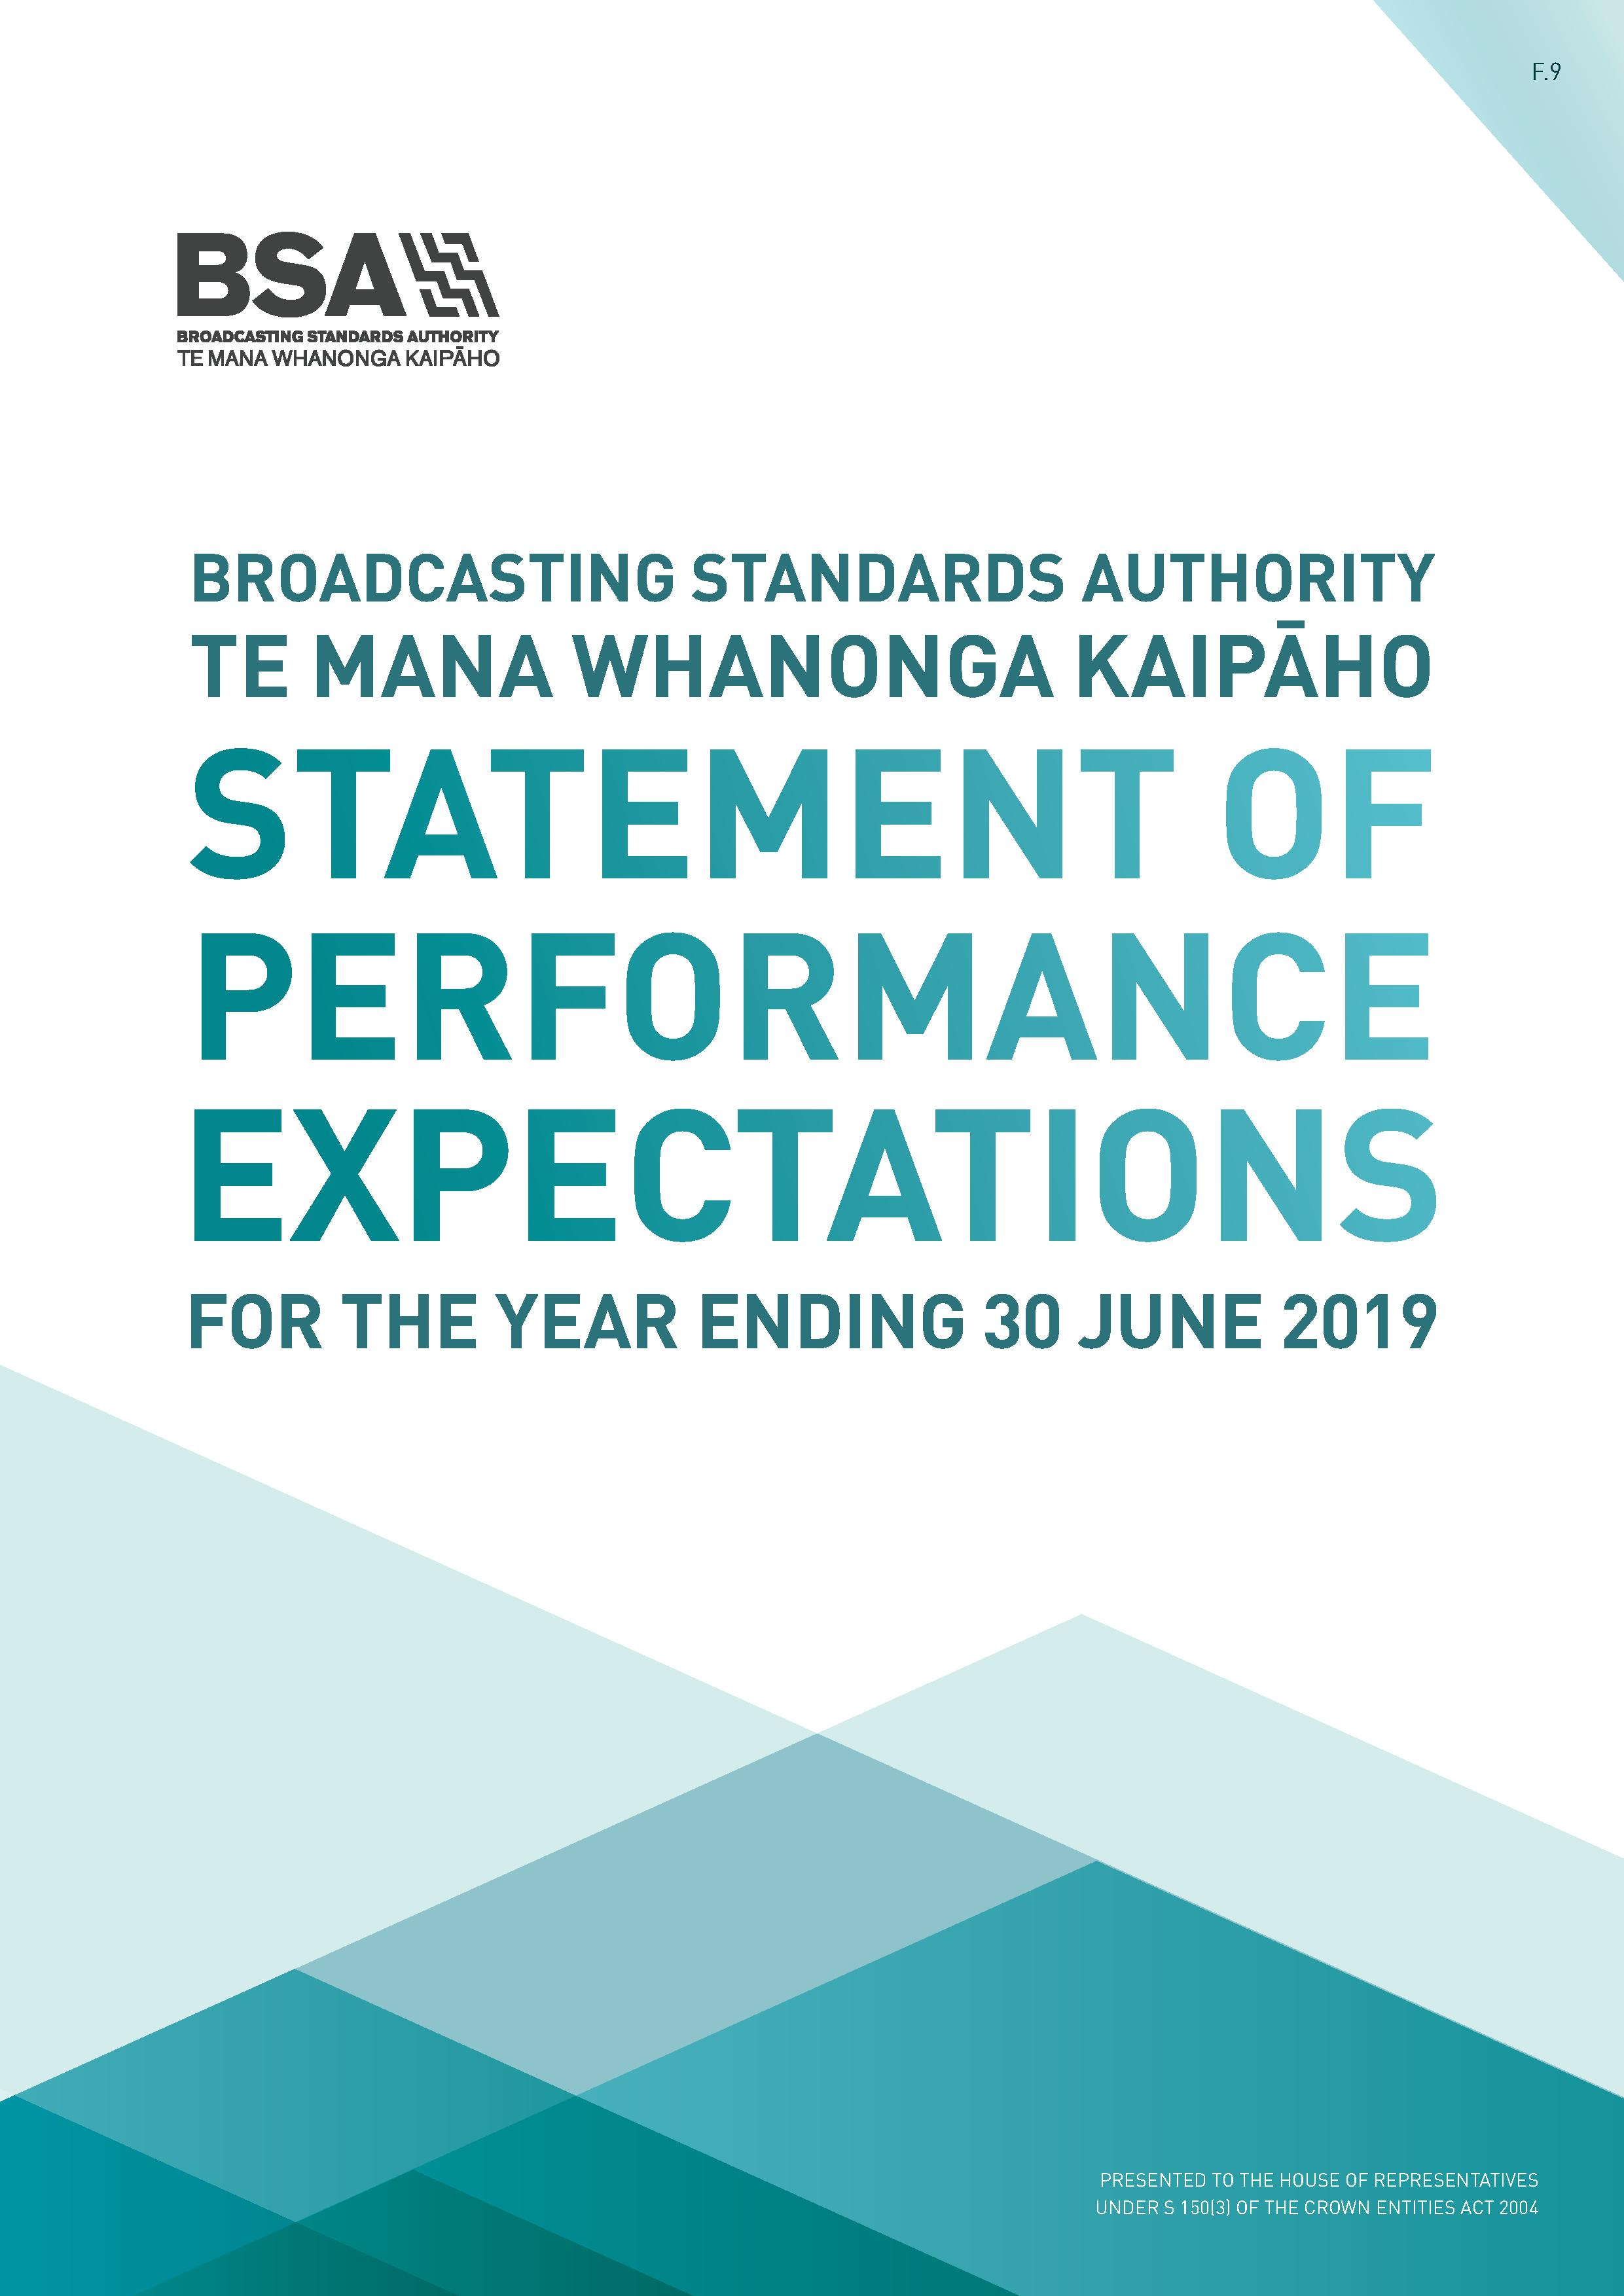 BSA Statement of Performance Expectations year ending 30 June 2019 1